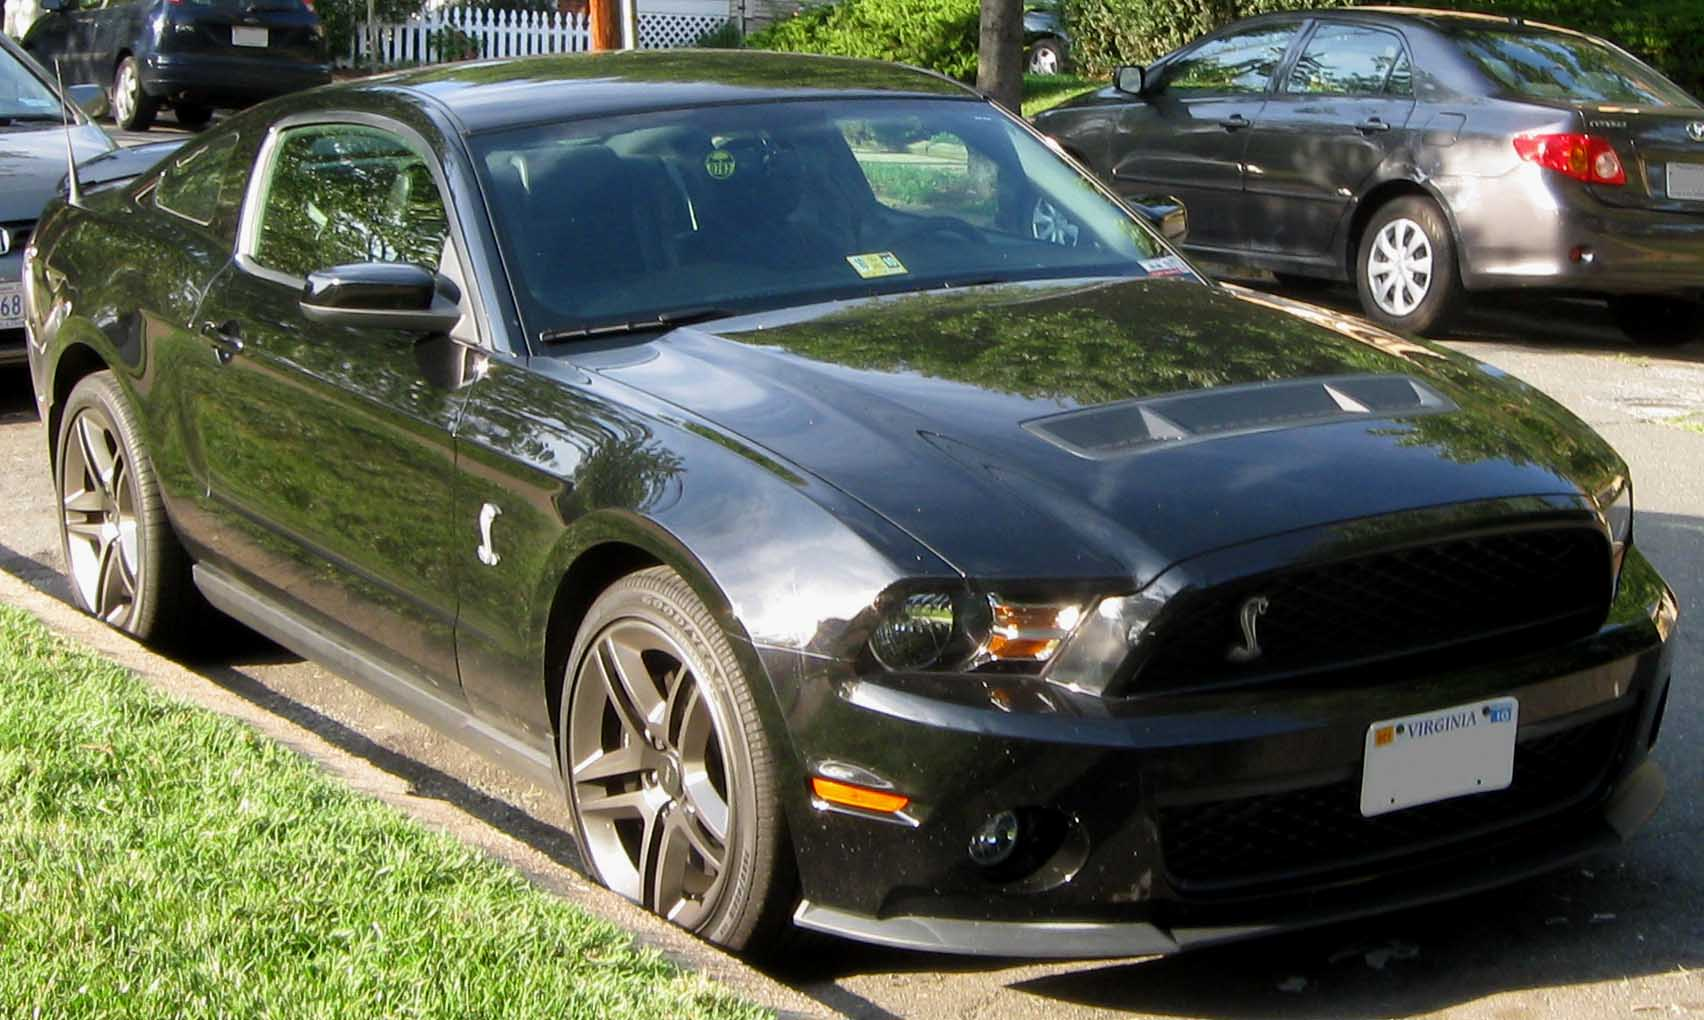 All Types 2010 mustang shelby : File:2010 Ford Mustang Shelby GT500 -- 07-22-2010.jpg - Wikimedia ...